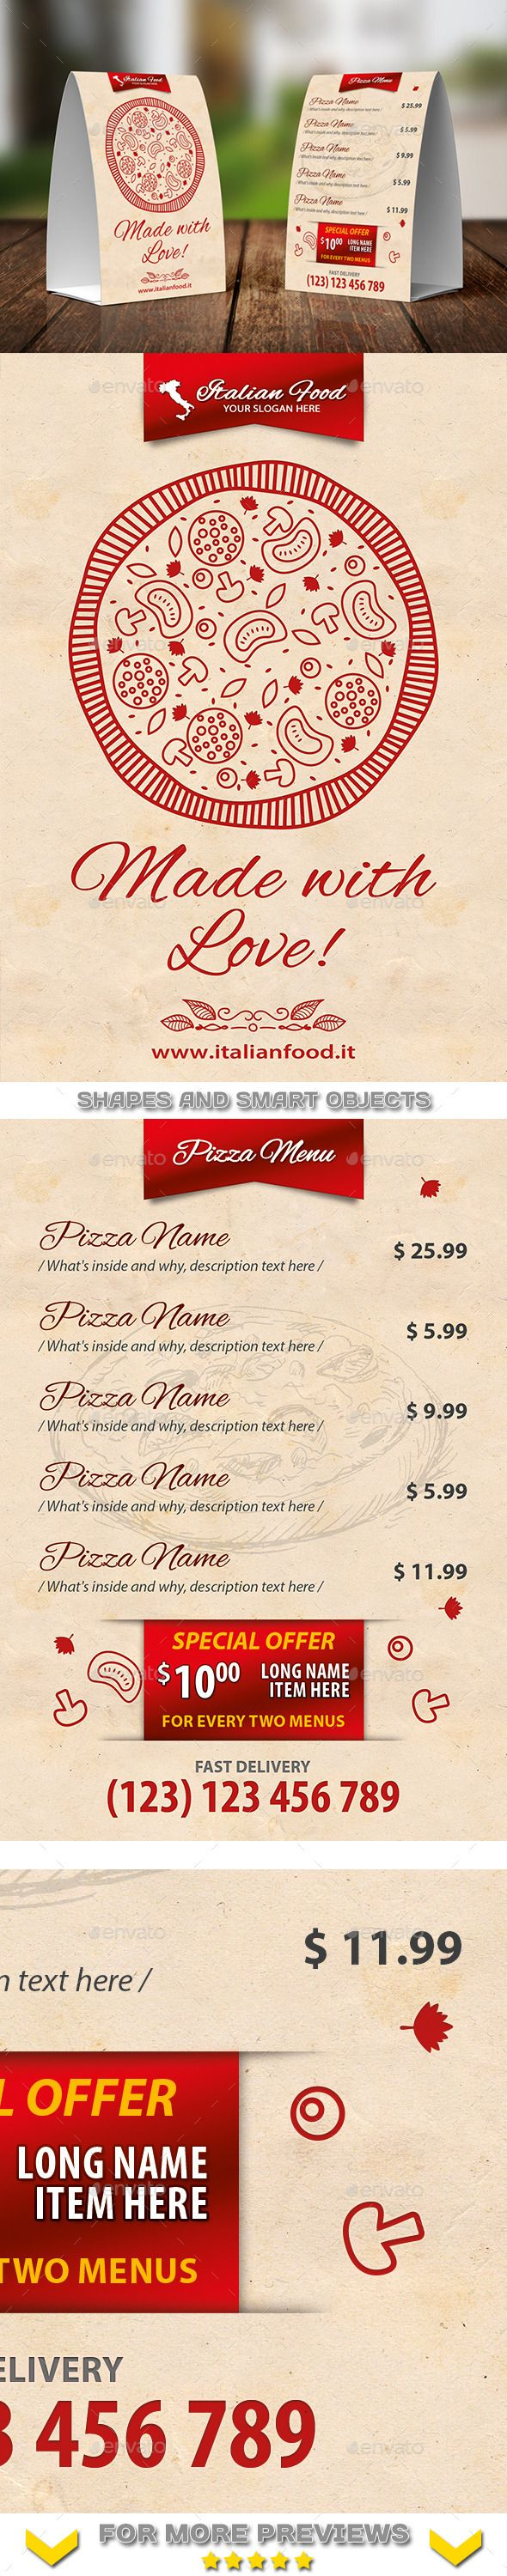 Italian Restaurant Menu Table Tent Template 20